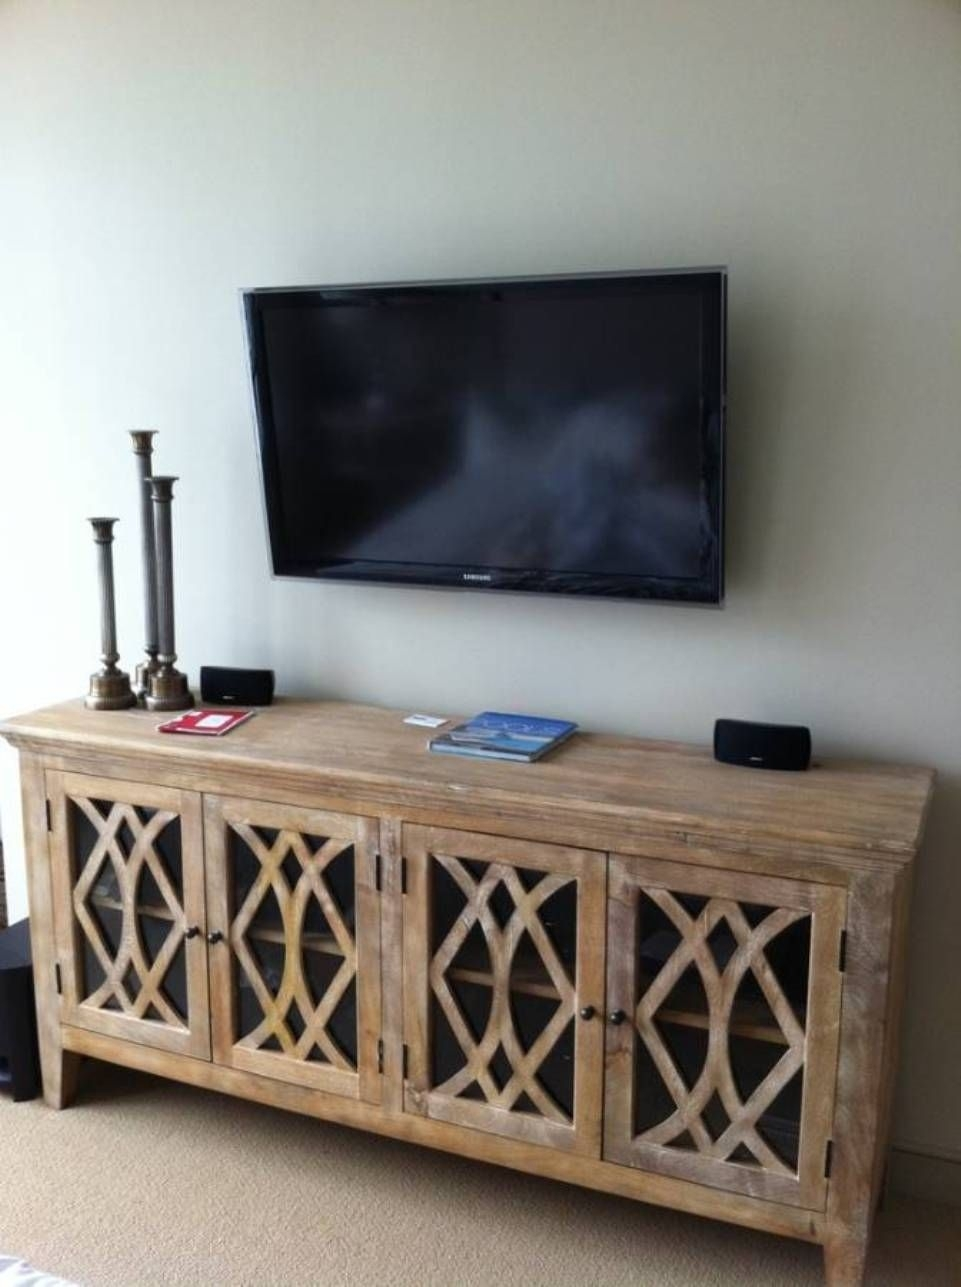 Wall Mounted Tv Over Sideboard : Modern Wall Mounted Tv Gallery Within 2017 White Wash 4 Door Galvanized Sideboards (View 14 of 20)